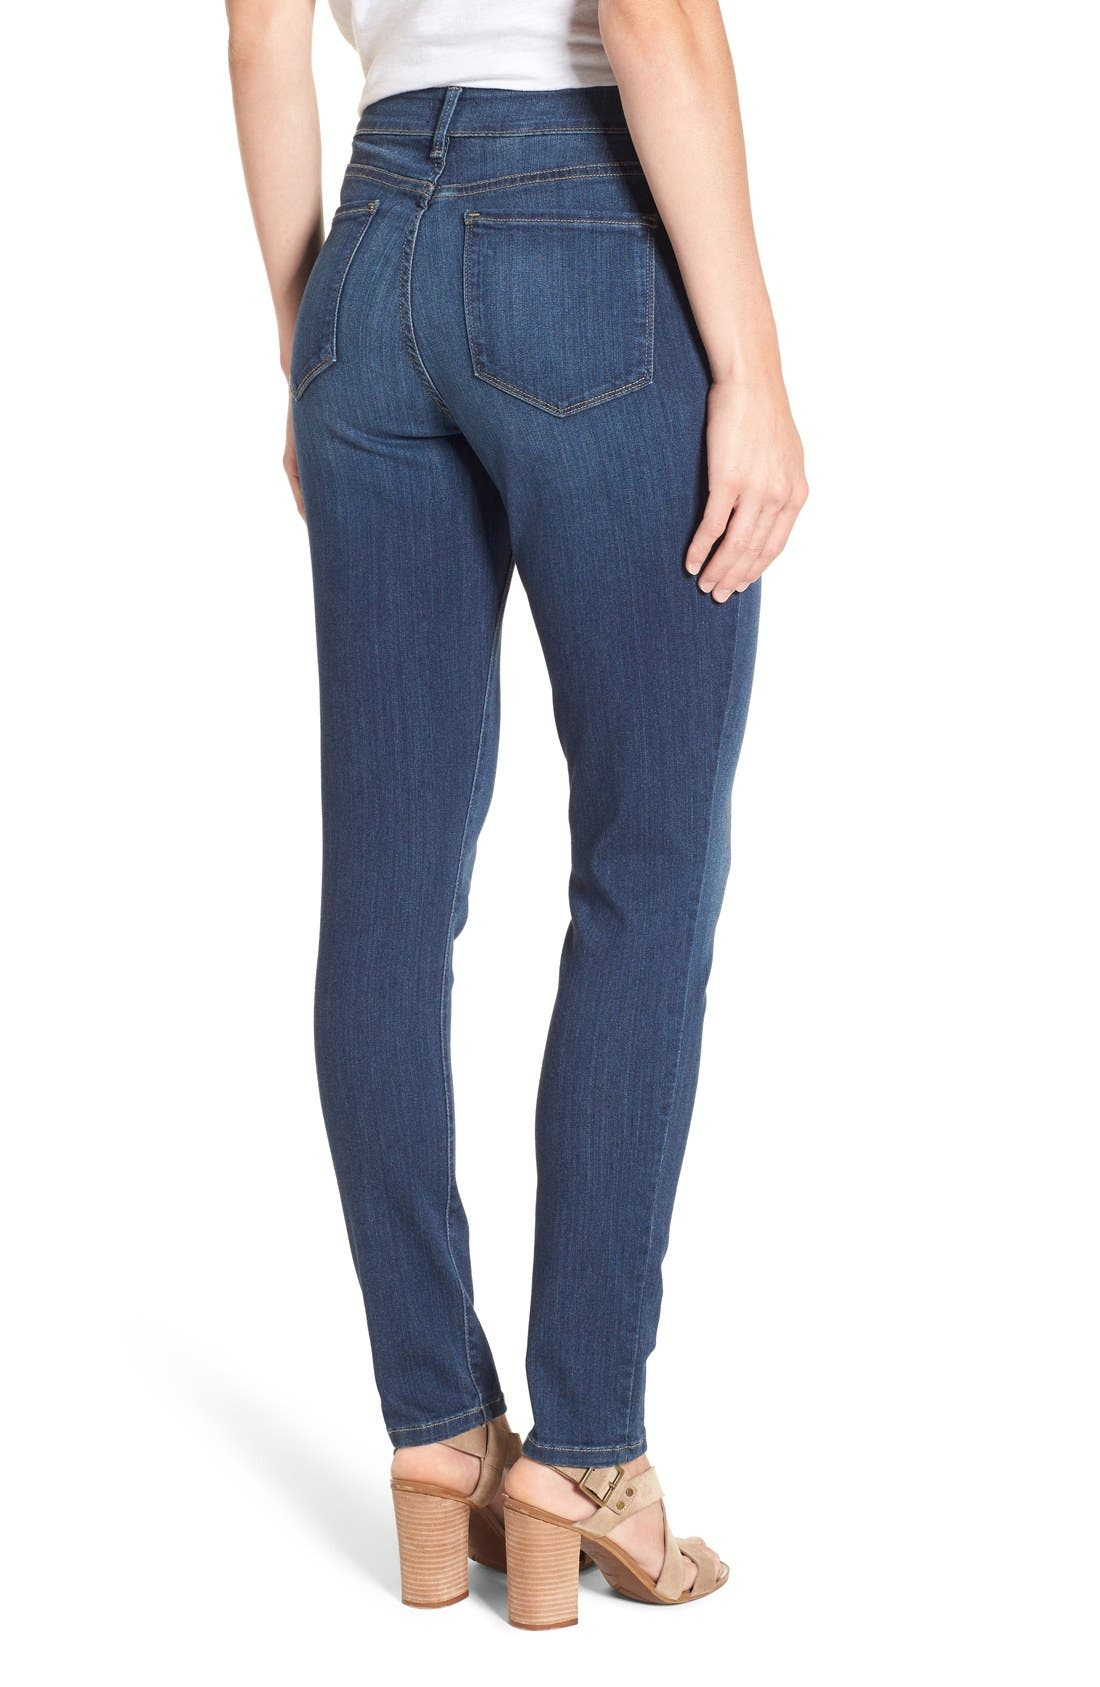 'Ami' Stretch Skinny Jeans,                             Main thumbnail 1, color,